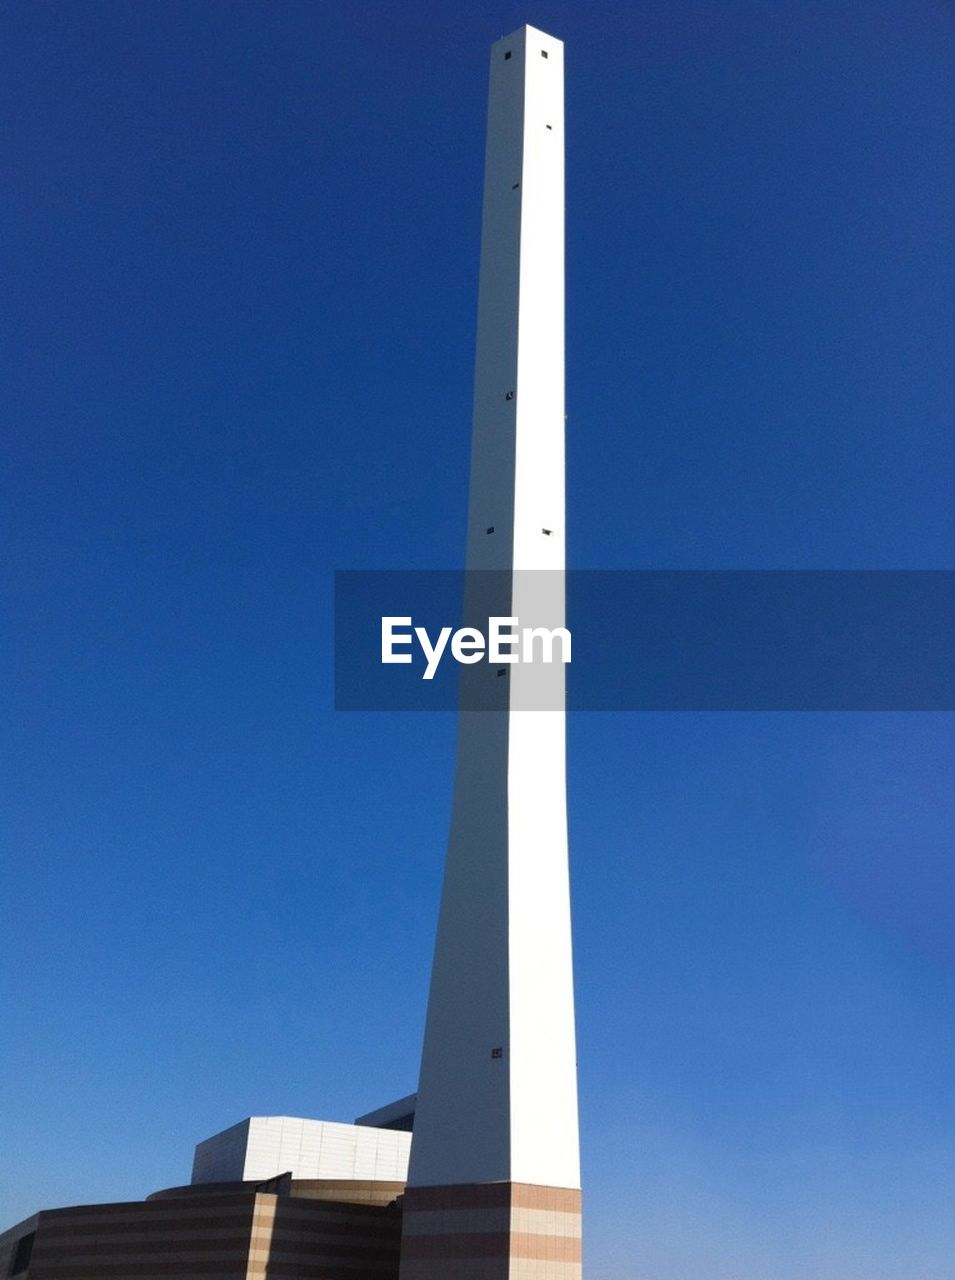 clear sky, day, blue, low angle view, outdoors, no people, built structure, sky